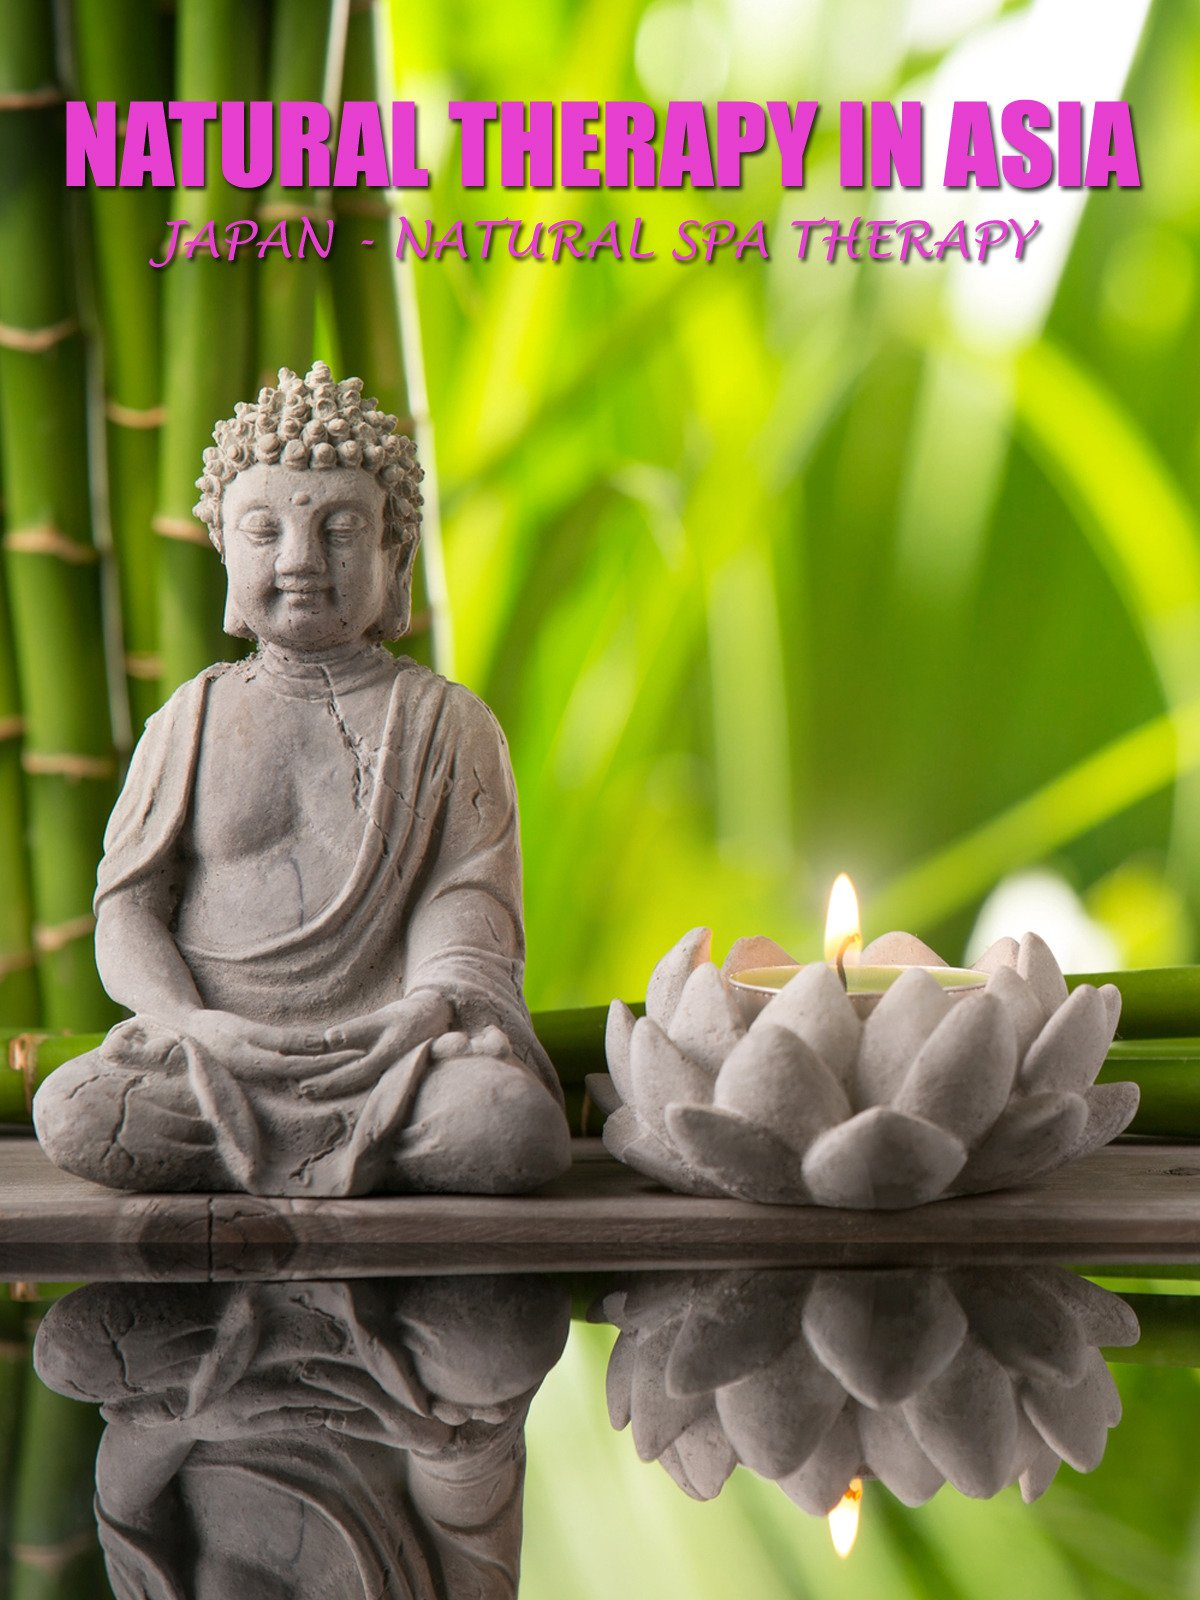 Natural Therapy in Asia